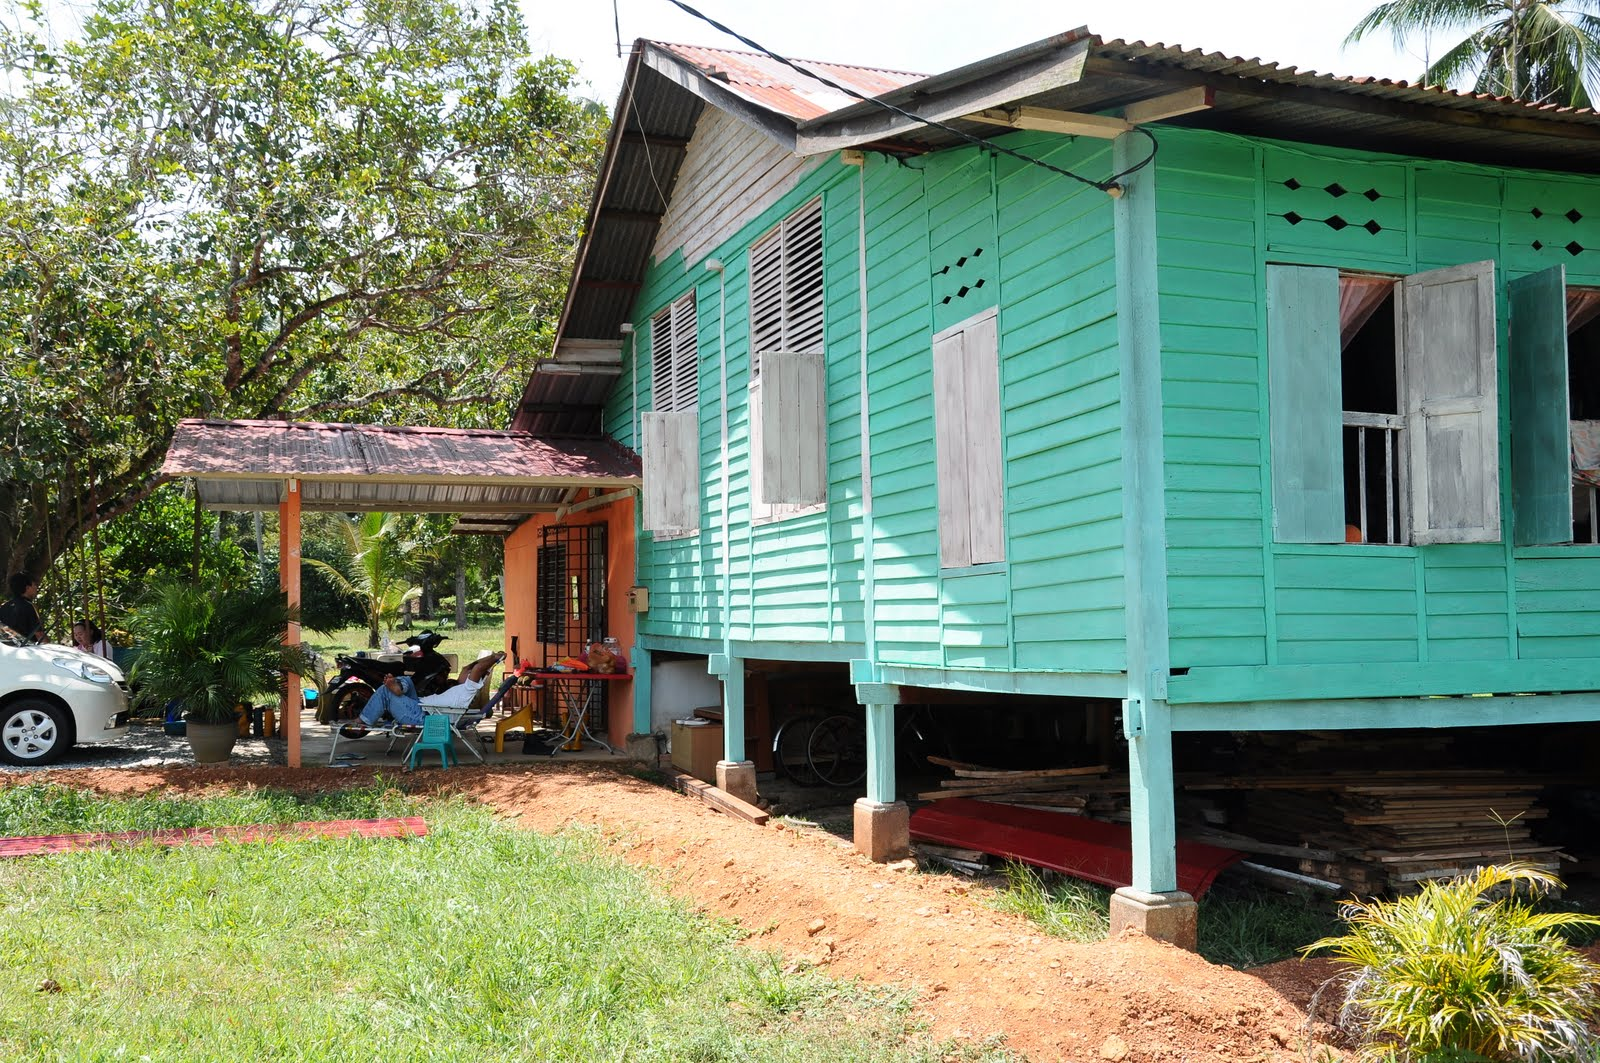 rumah warna hijau muda submited images pic2fly